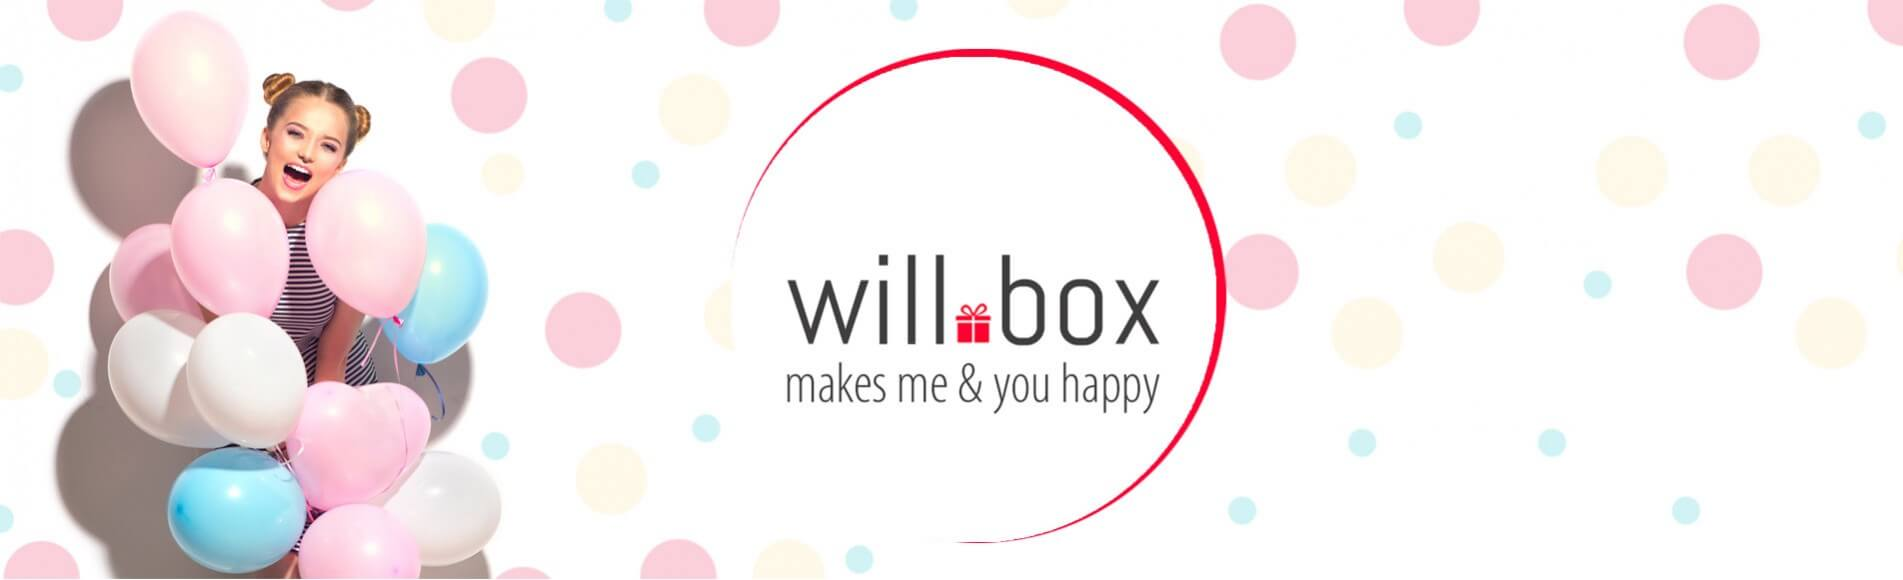 willbox